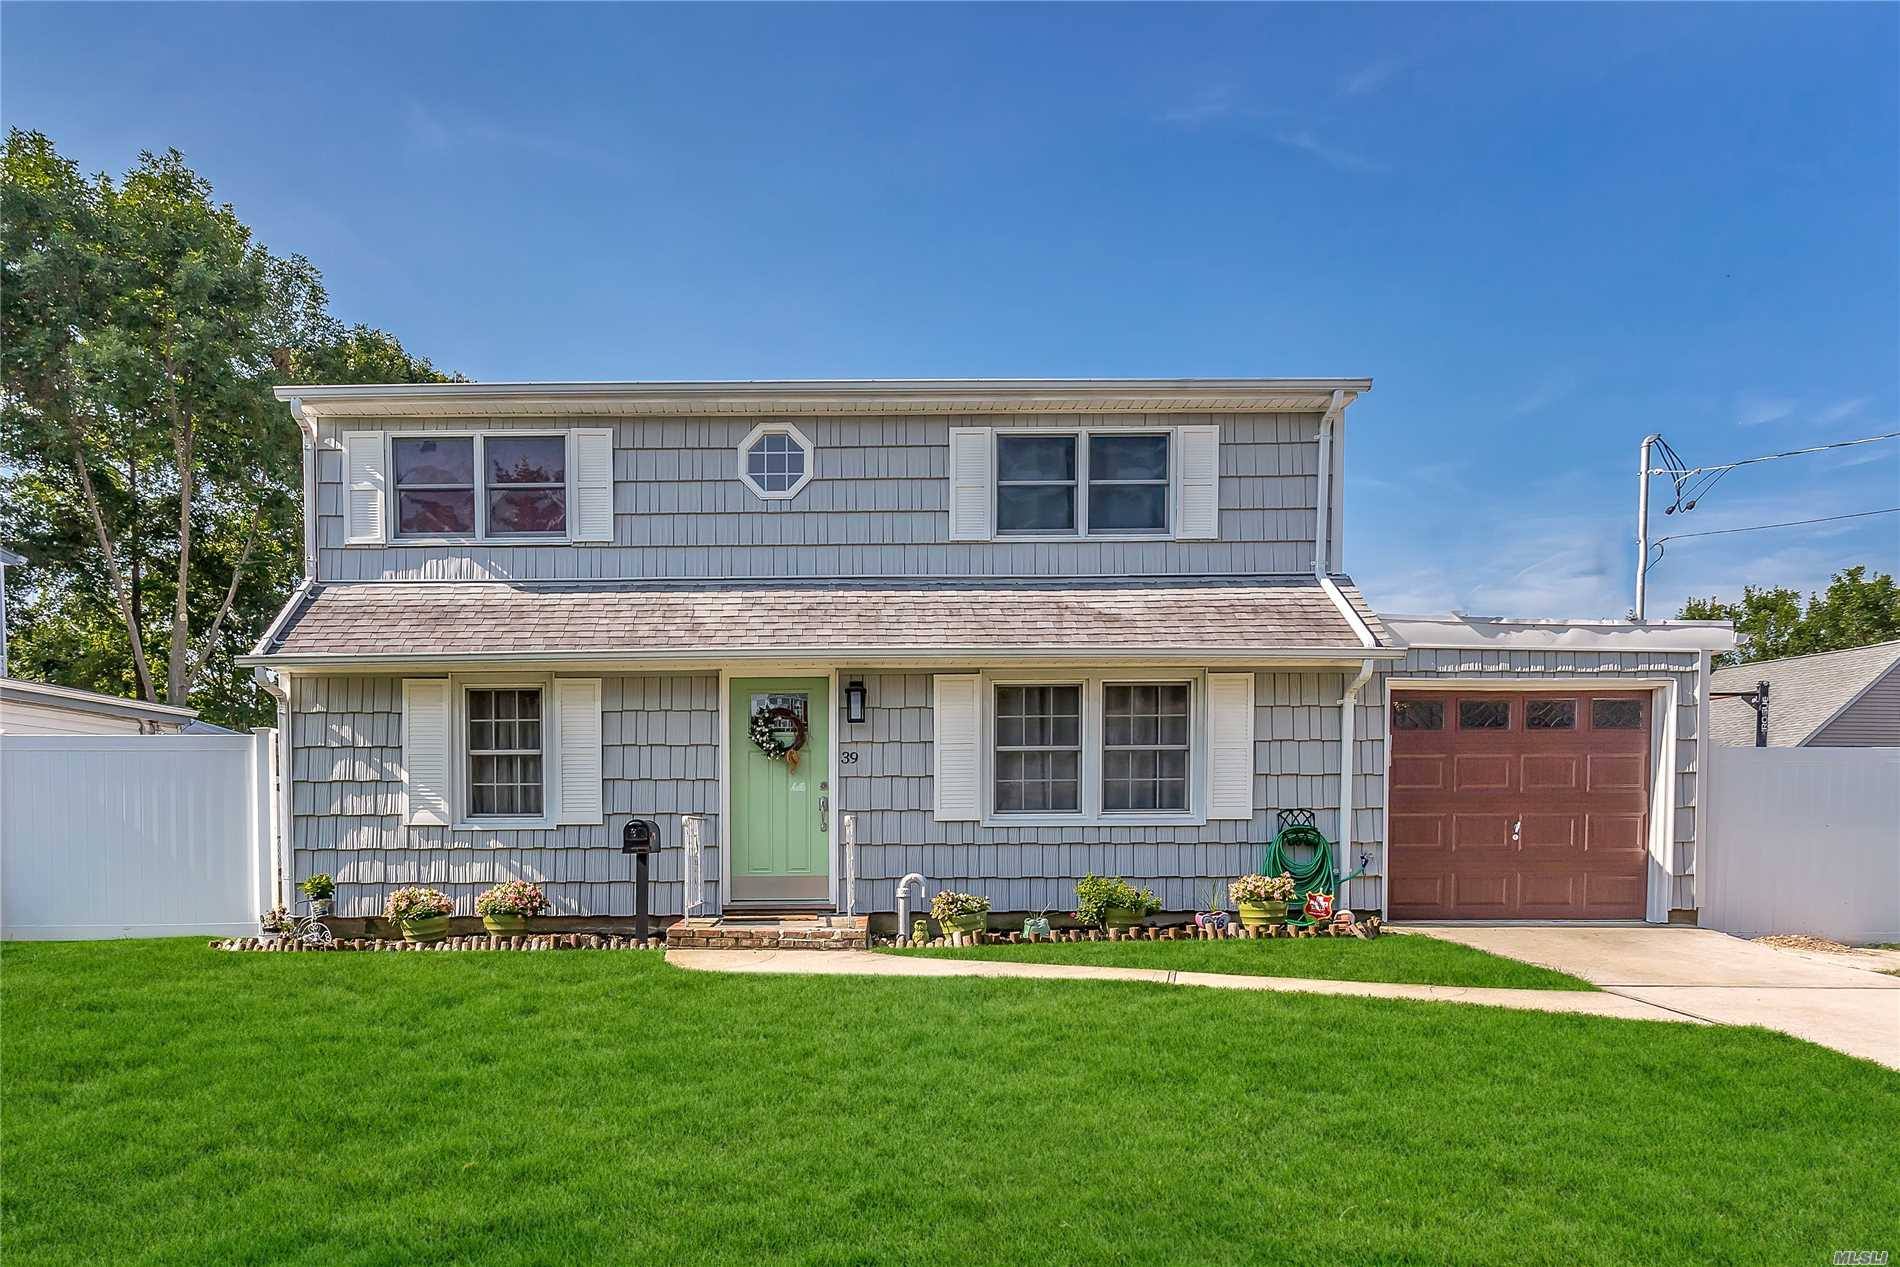 Beautiful Expanded Cape With Living Room, Formal Dining Room, Eat-In-Kitchen With New Stainless Steel Appliances, Sunroom, Updated Bath, In-Ground Sprinklers, And Much Much More.